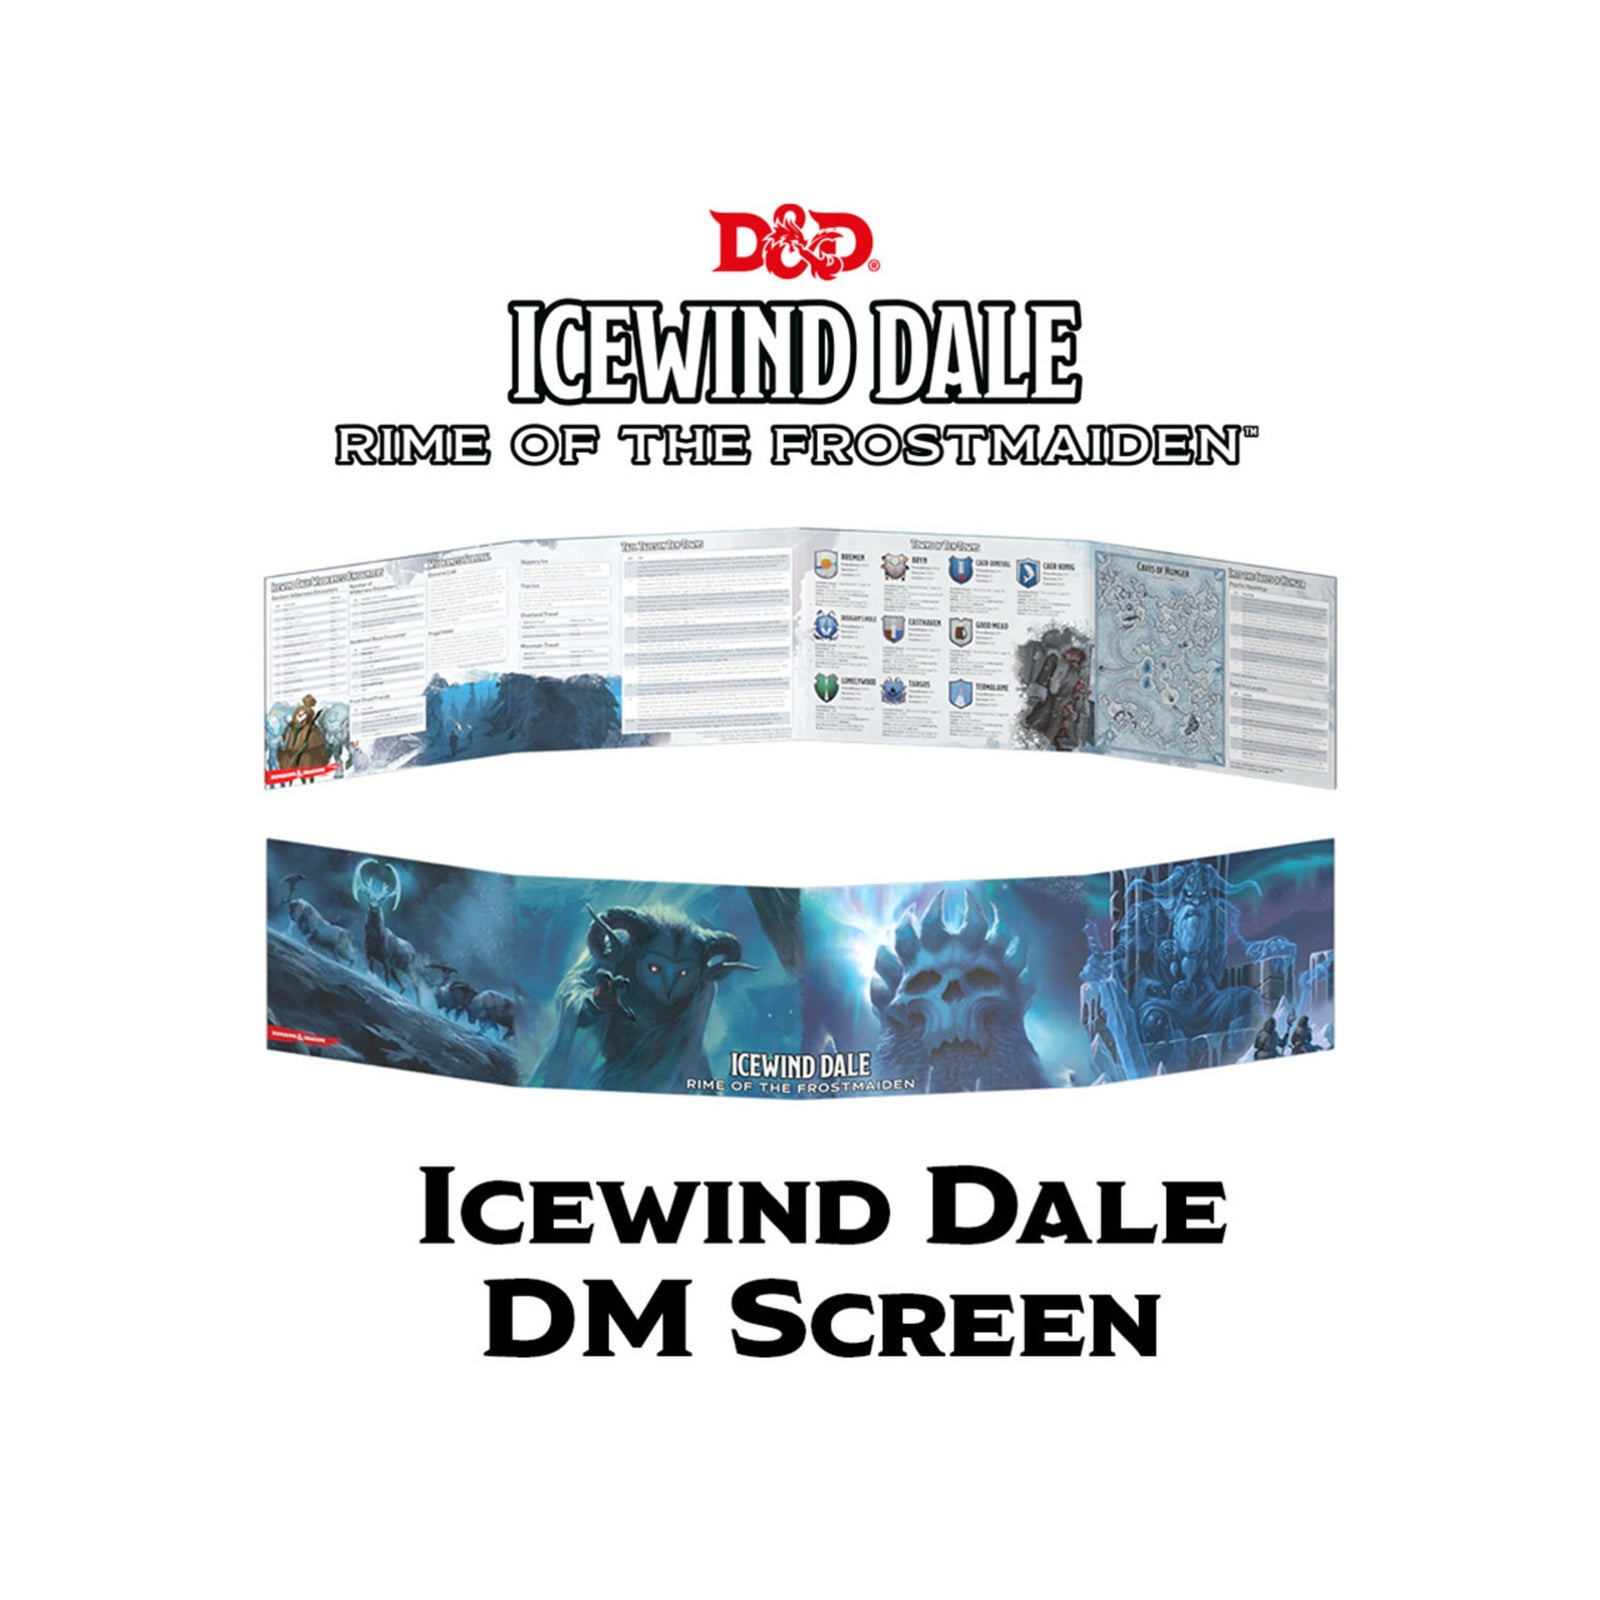 Icewind Dale Rime of the Frostmaiden DM Screen